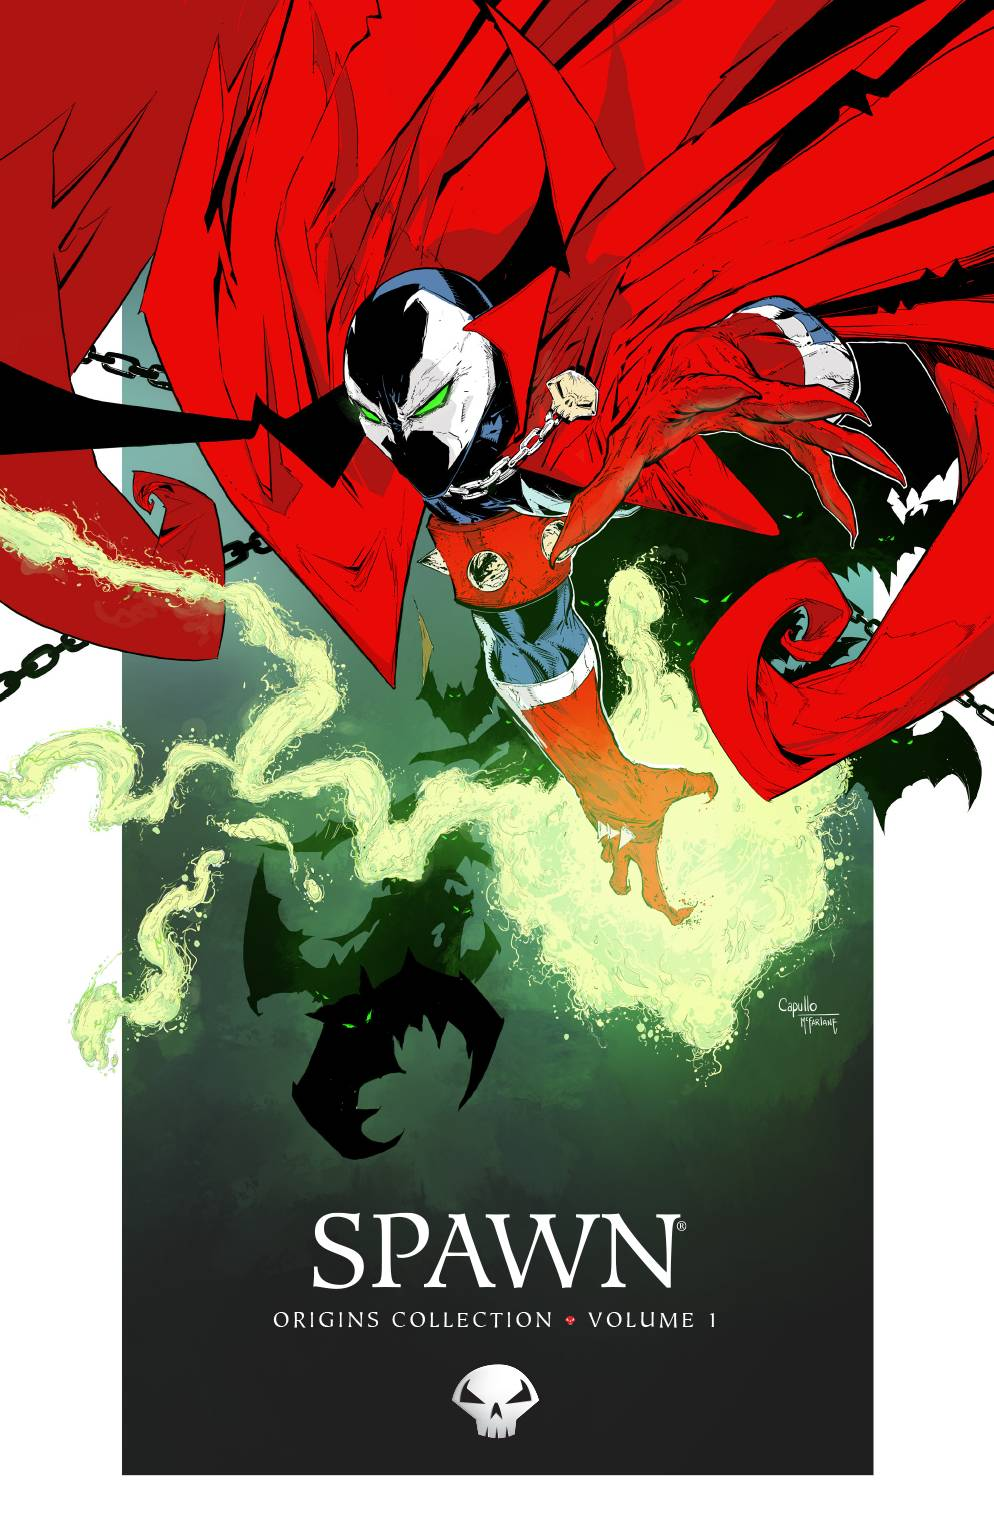 SPAWN ORIGINS TP VOL 01 (NEW PTG) (MAR190064)